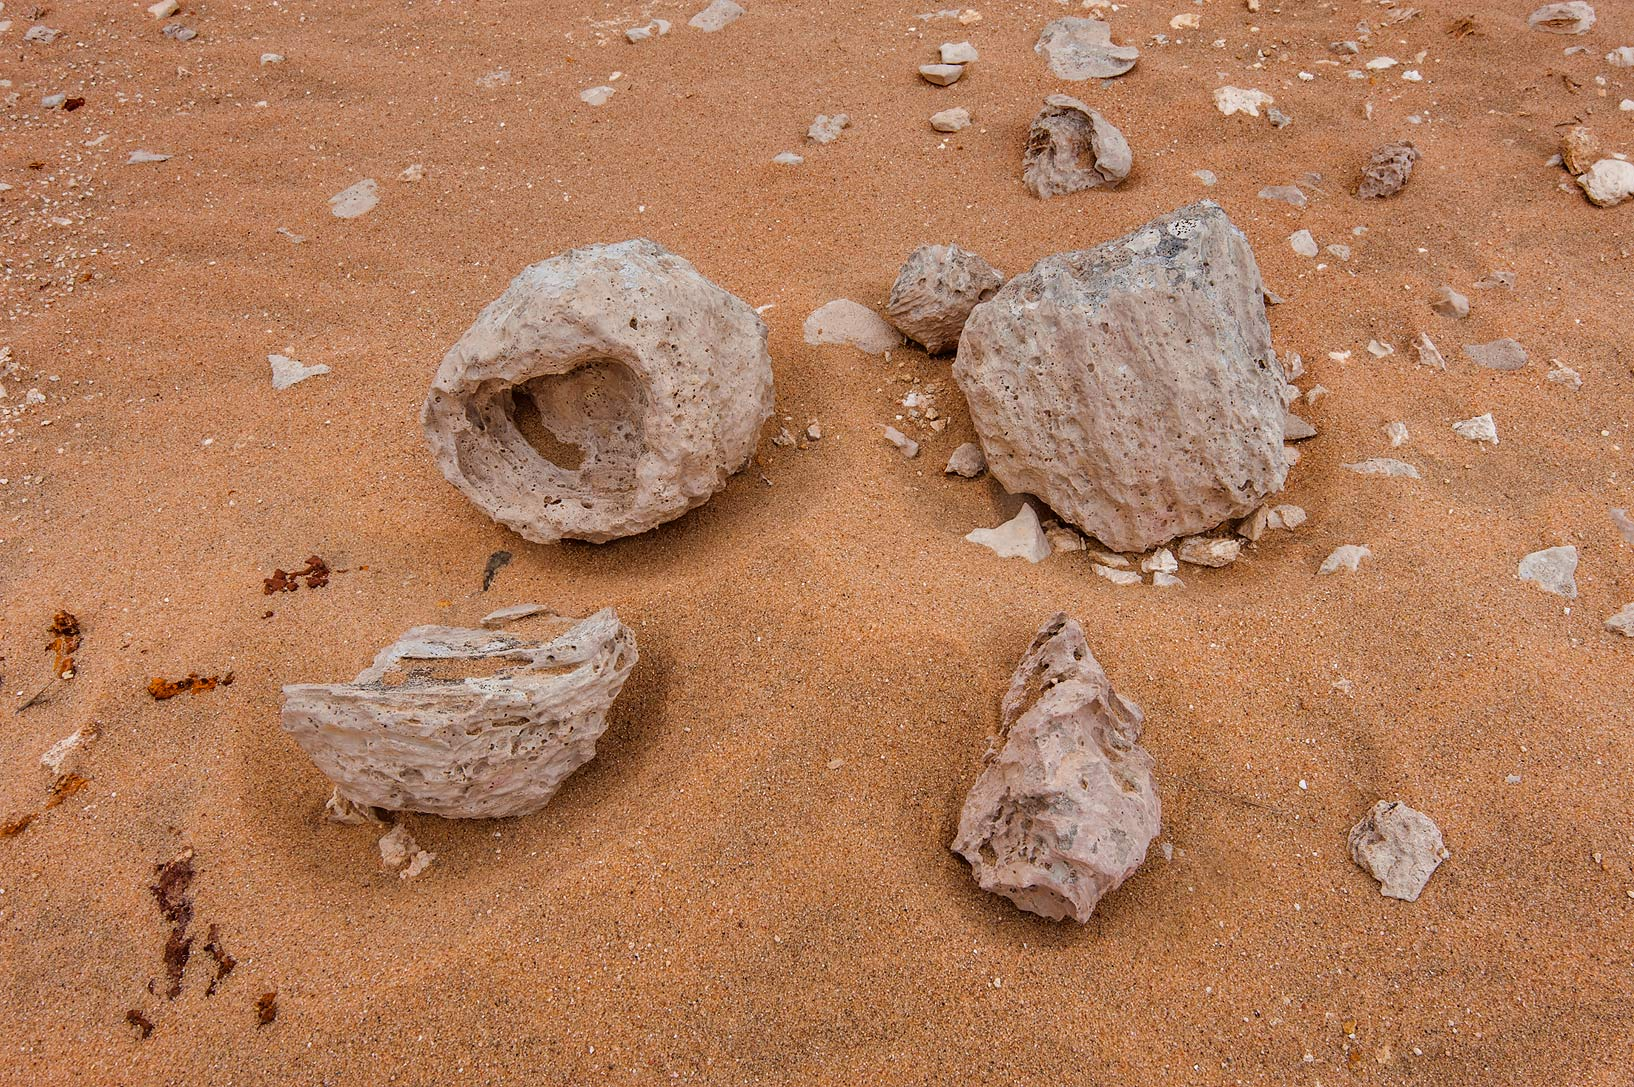 Wind abrasion of rocks in area of Nakhsh Mountain near Salwa Rd. in southern Qatar